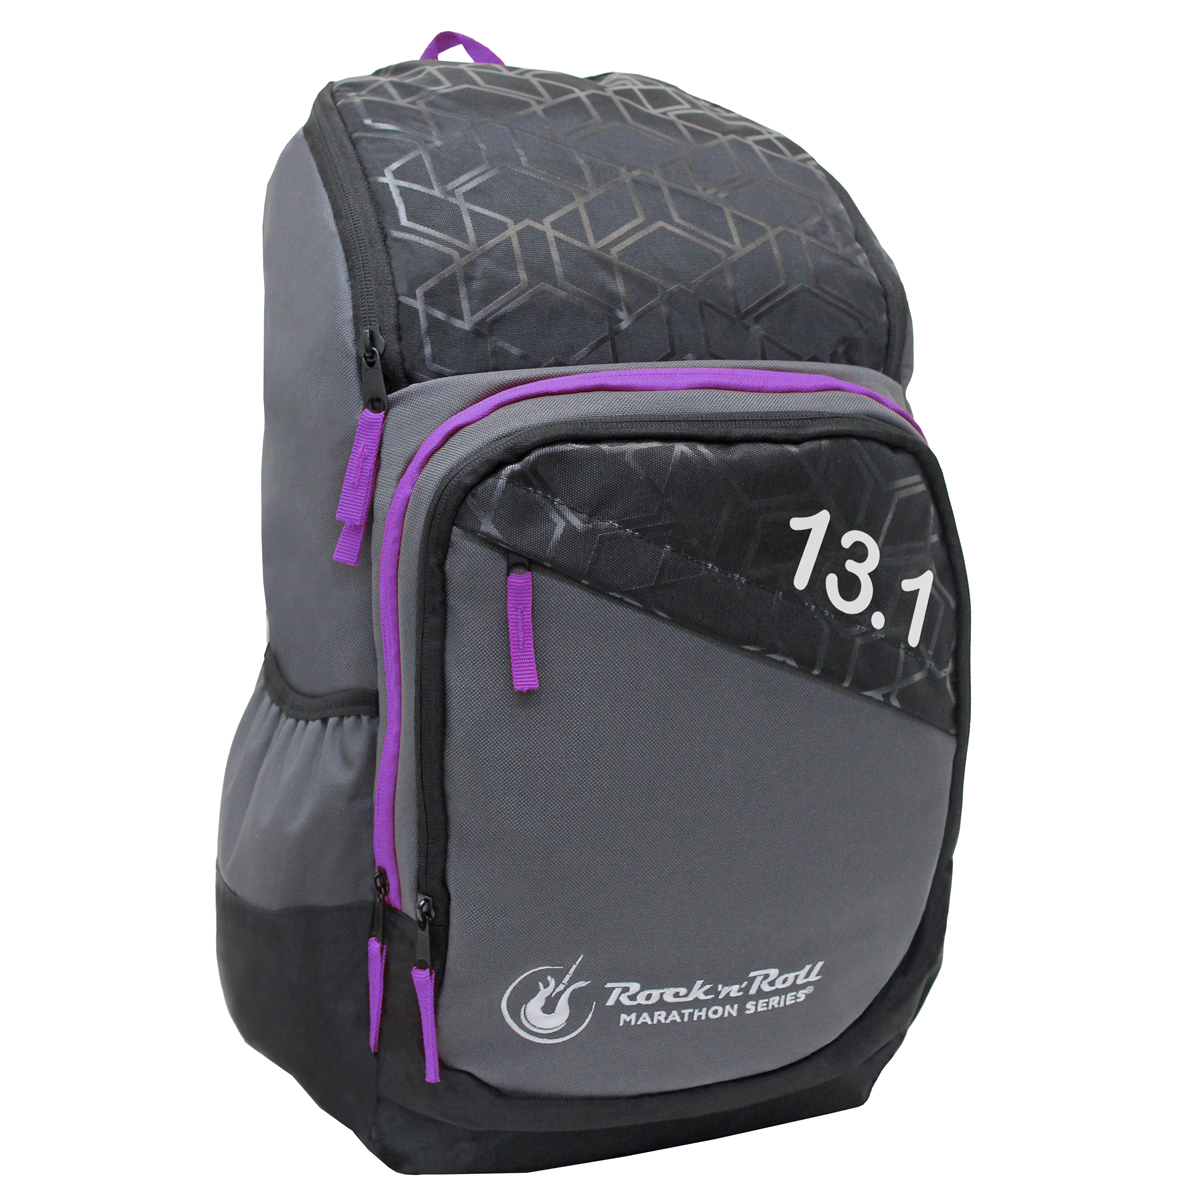 ROCK N ROLL MARATHON SERIES 13.1 GEO BACKPACK PURPLE